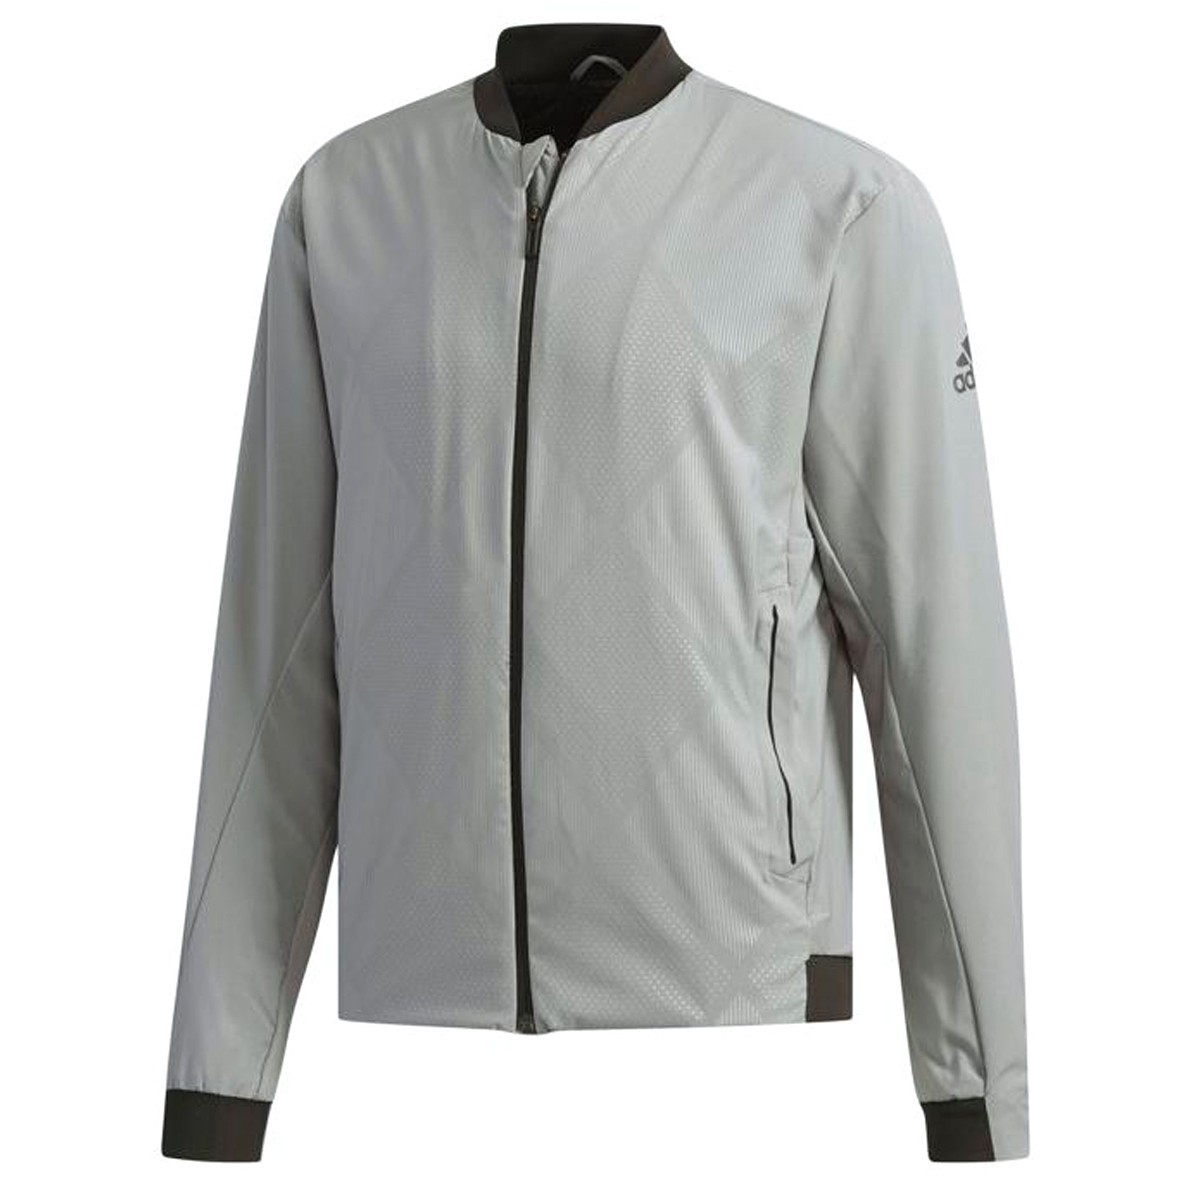 537d77eb47 VESTE ADIDAS HOMME BARRICADE US OPEN Adidas DN6000 : TENNIS PASSION